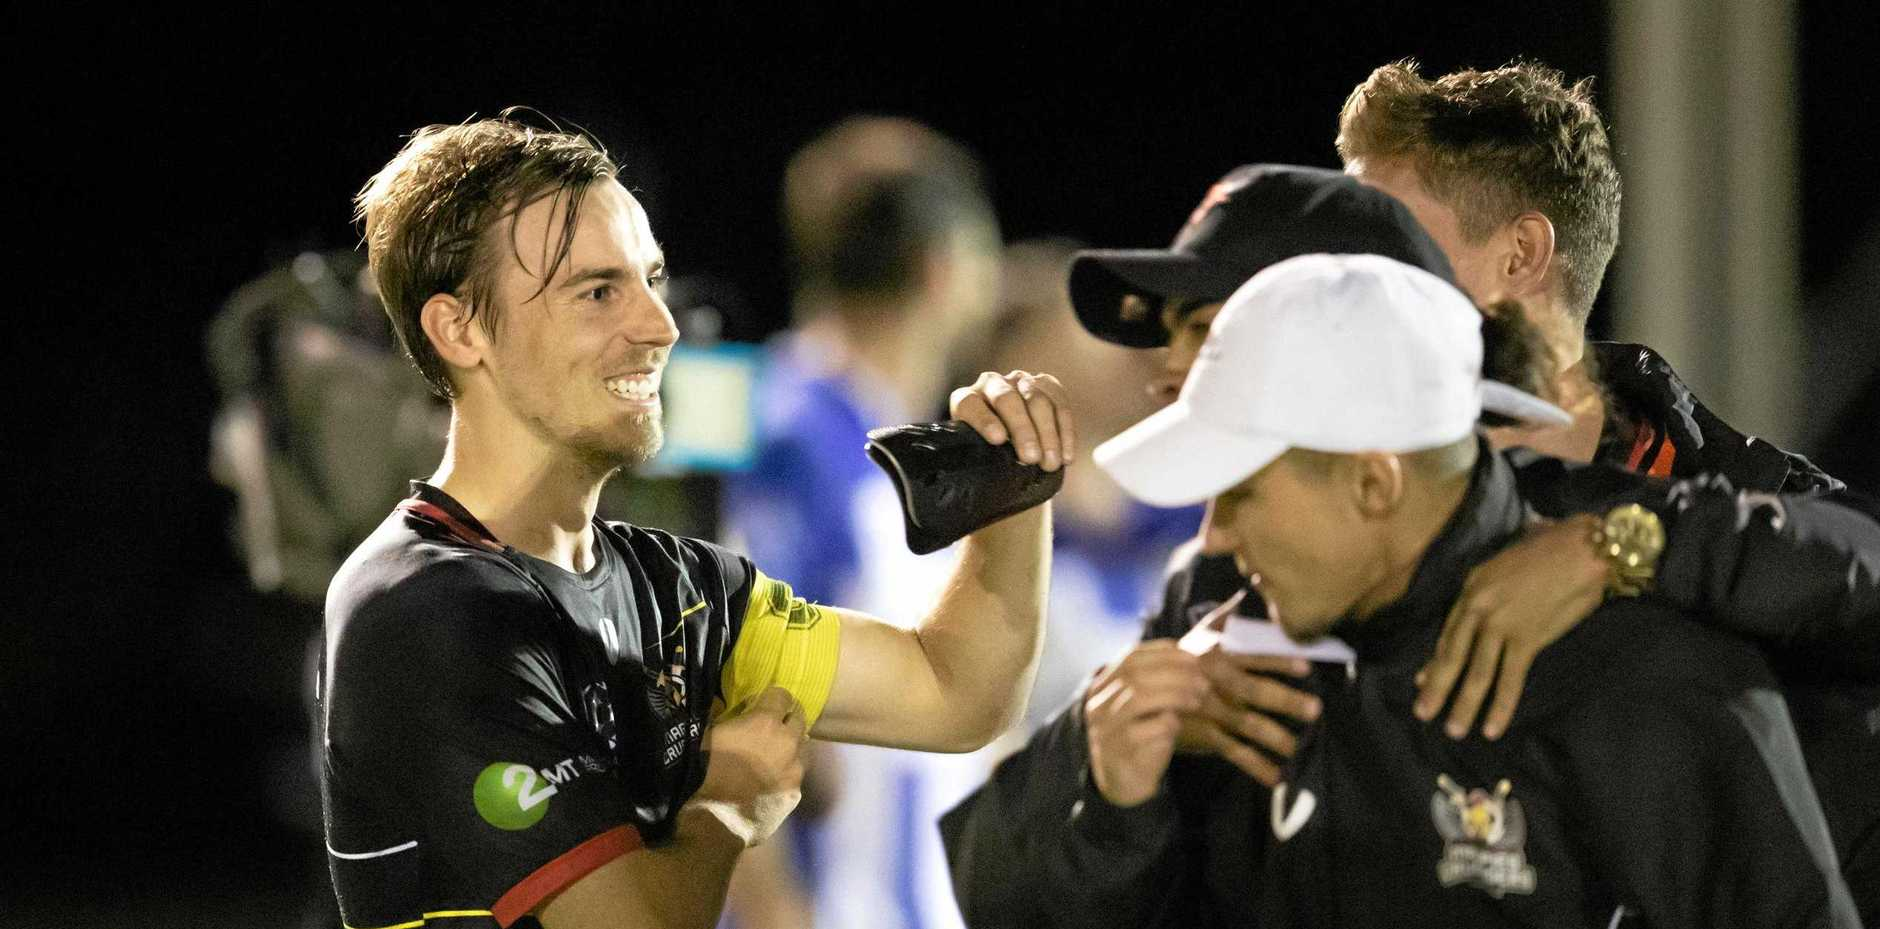 REFOCUS: Magpies Crusaders defender Nelson Burgess (left) says the team has little time to reflect on their mid-week FFA Cup success with a big NPL game to play tomorrow night.